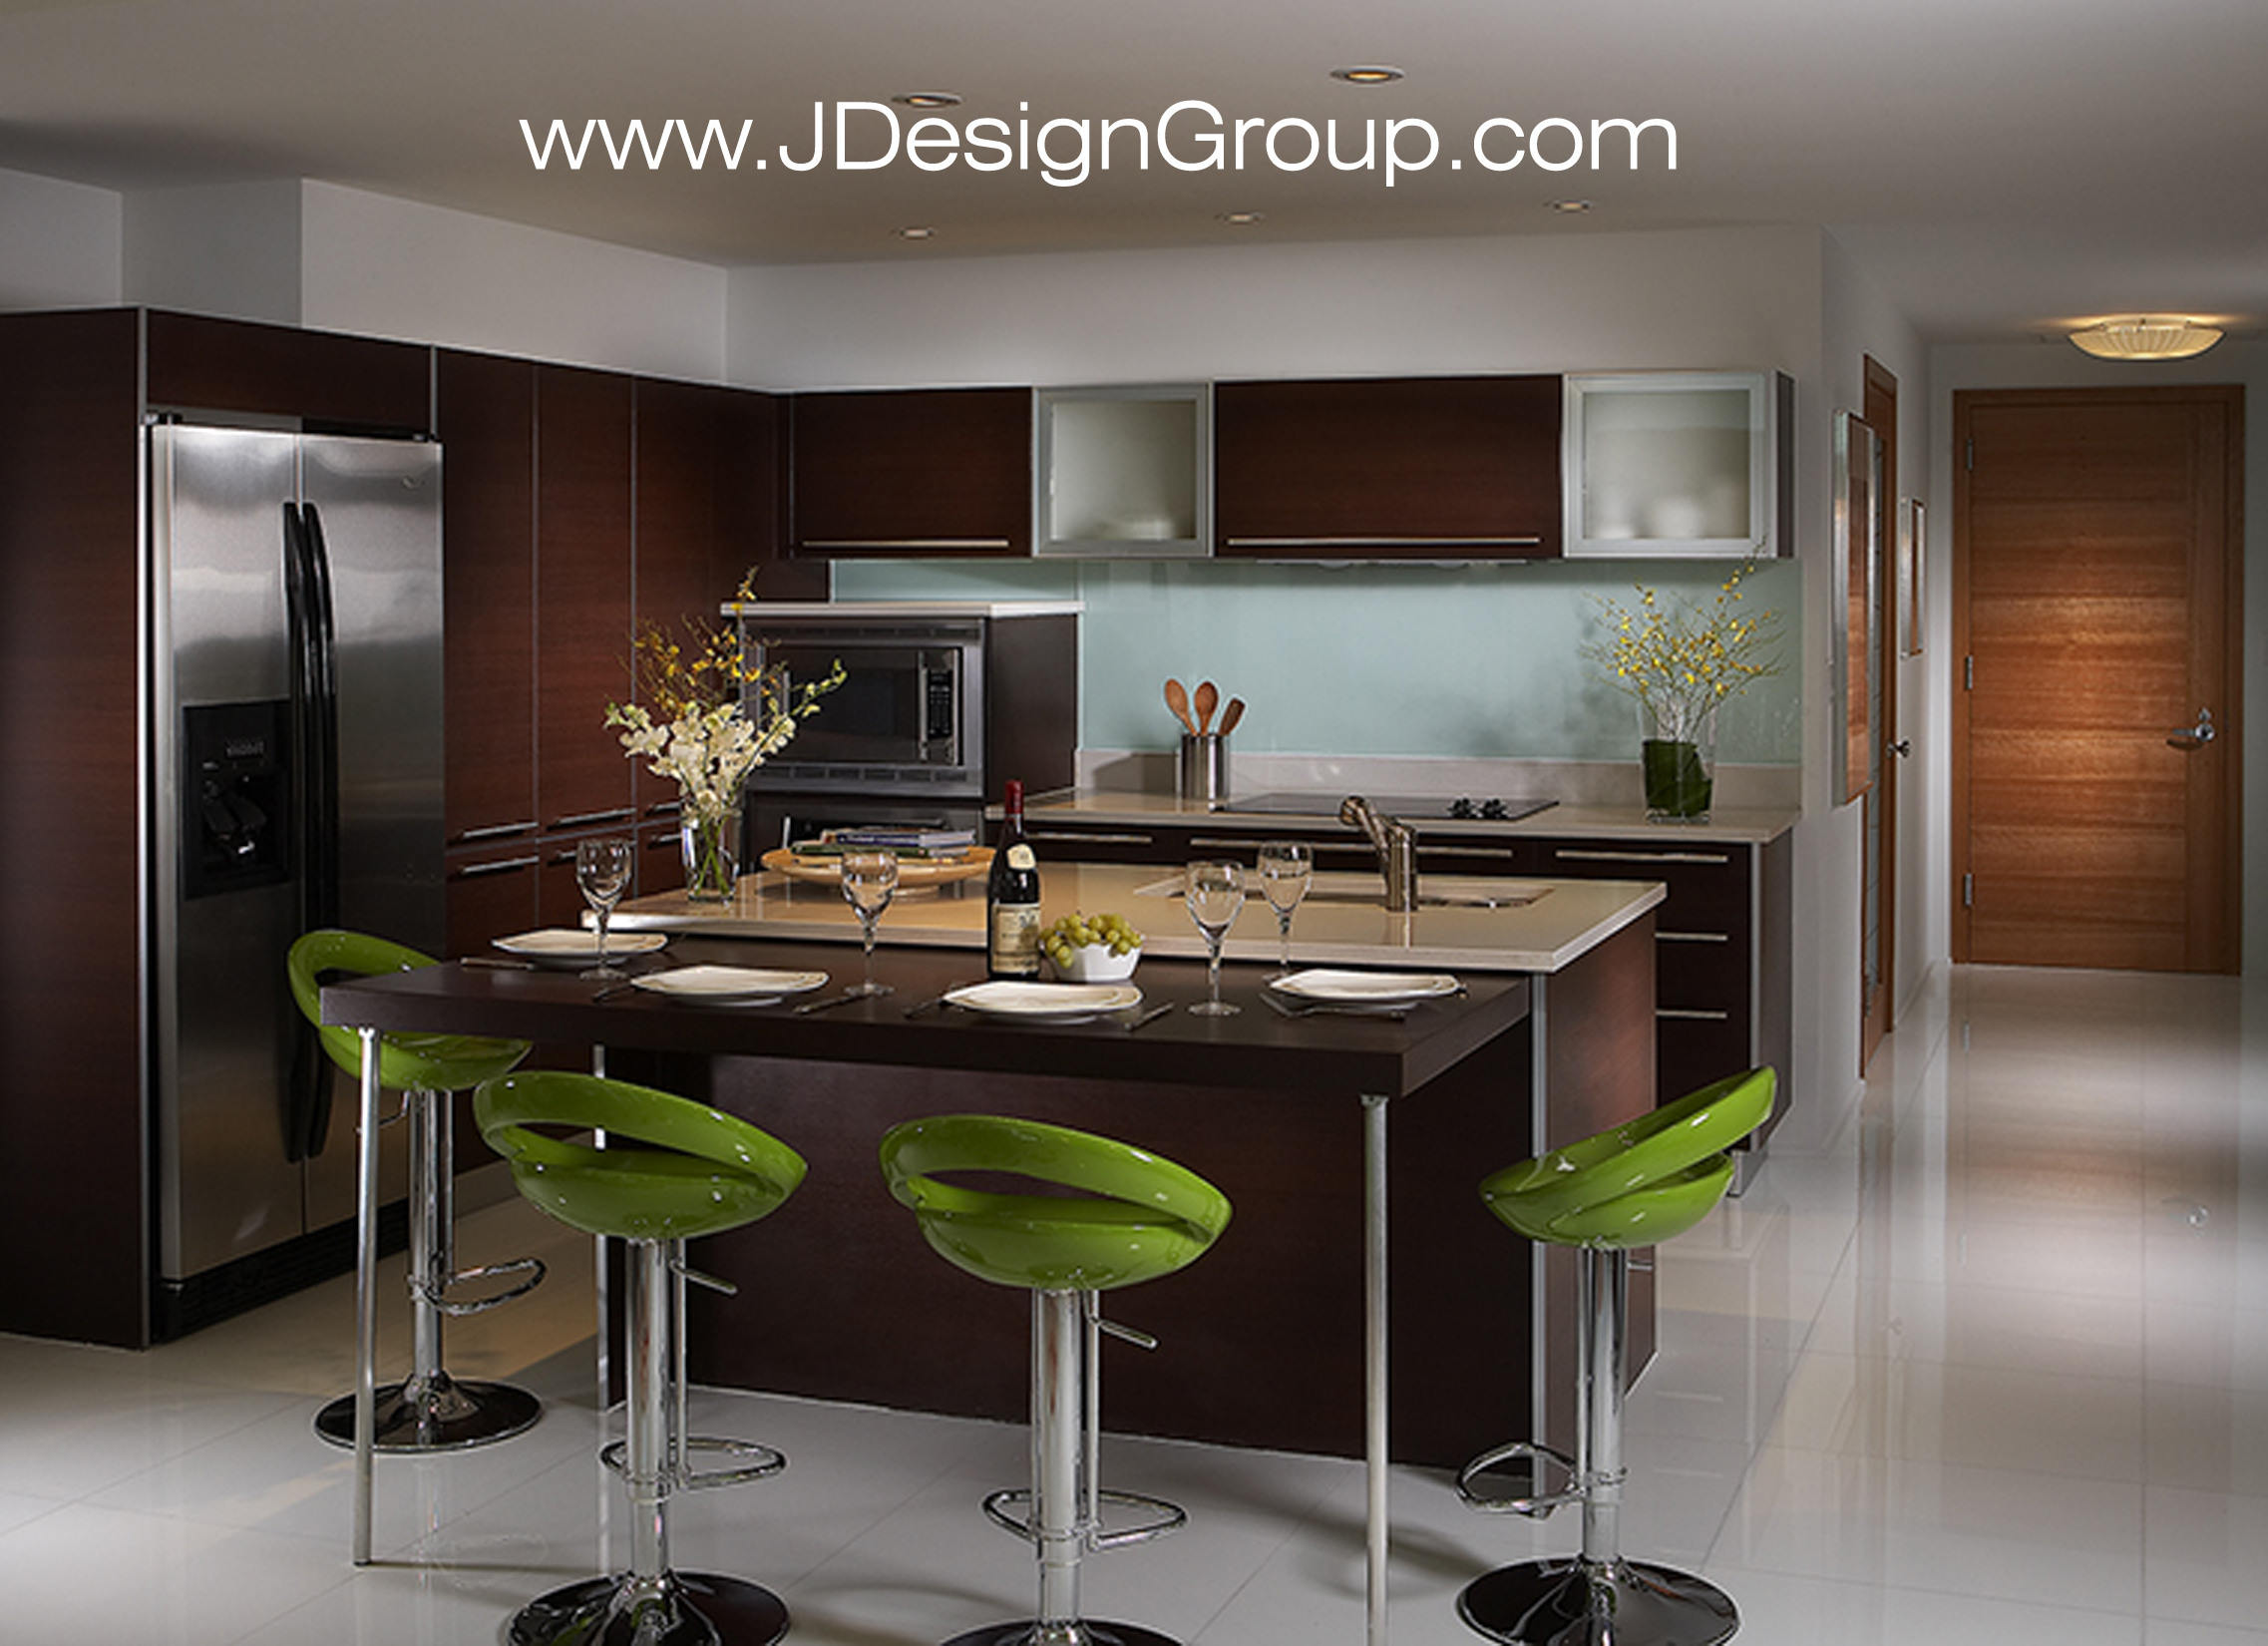 Admirable Kitchen Island Designs For Condos Best Kitchen Island 2017 Largest Home Design Picture Inspirations Pitcheantrous